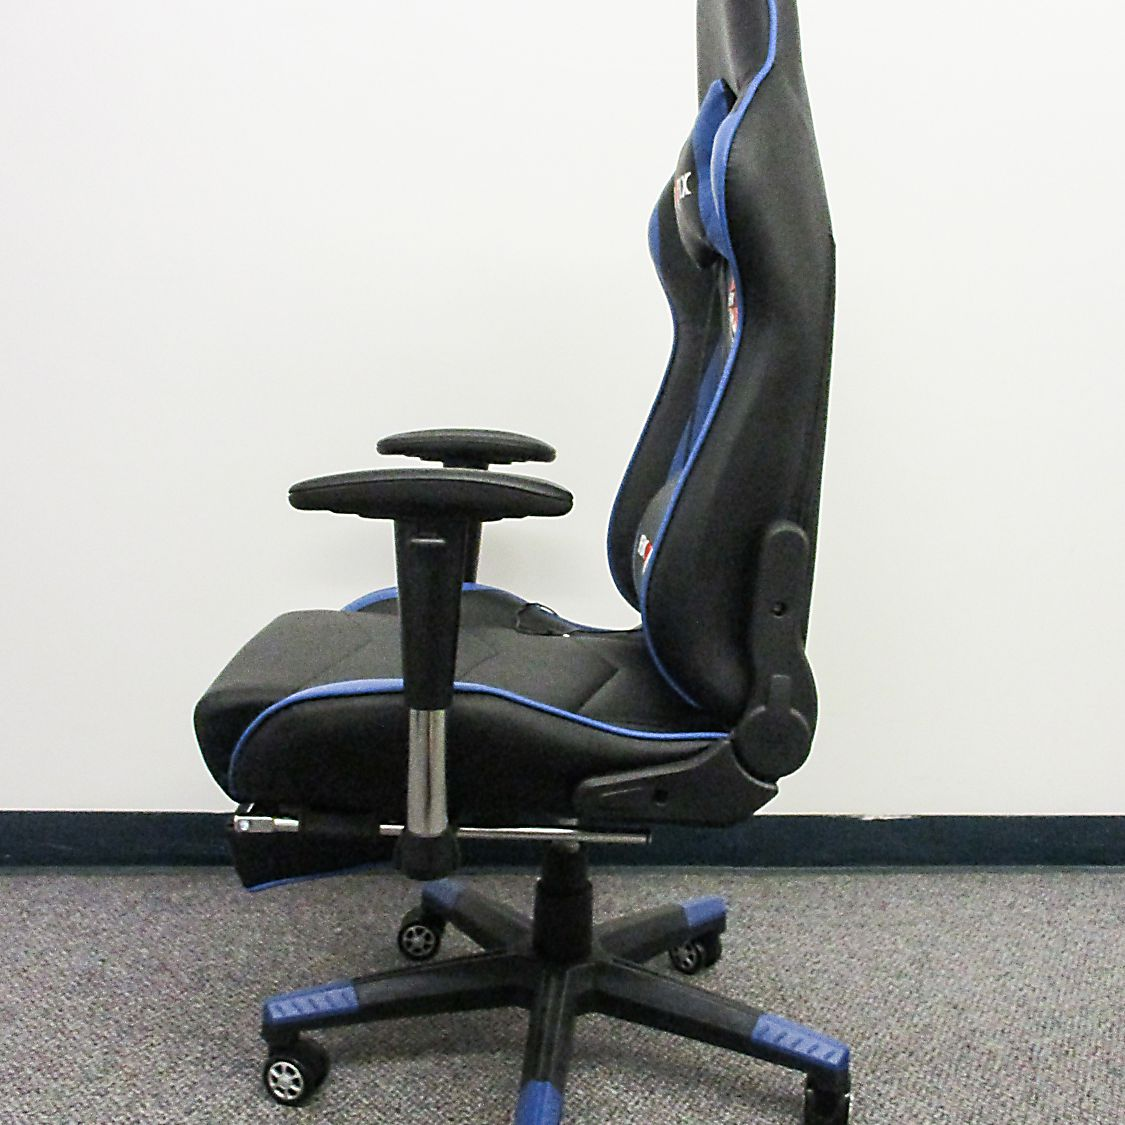 The 10 Best Gaming Chairs of 2019